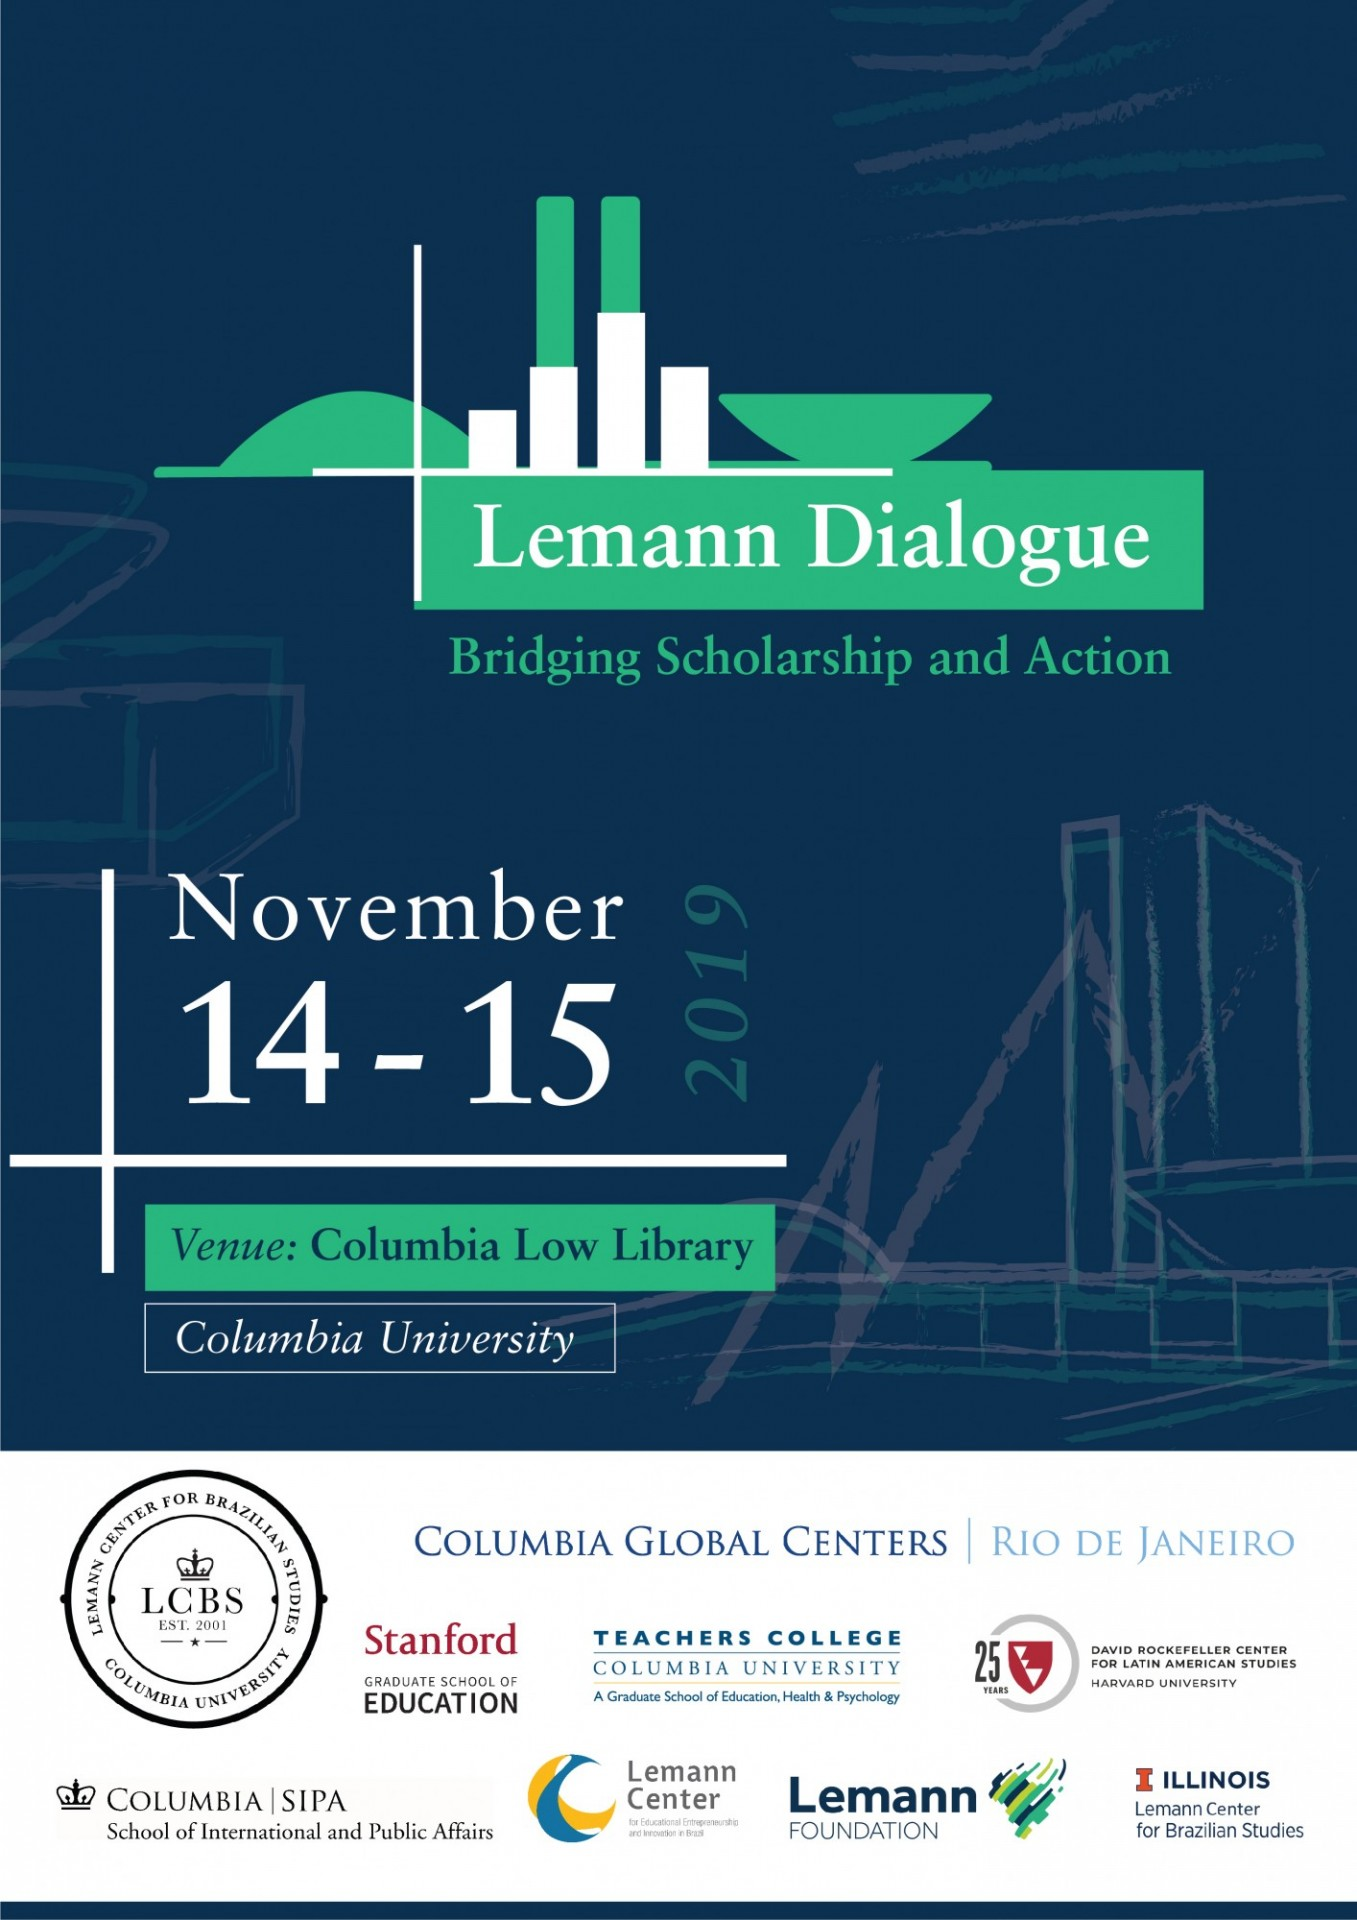 Lemann Dialogue 2019: Bridging Scholarship and Action Schedule